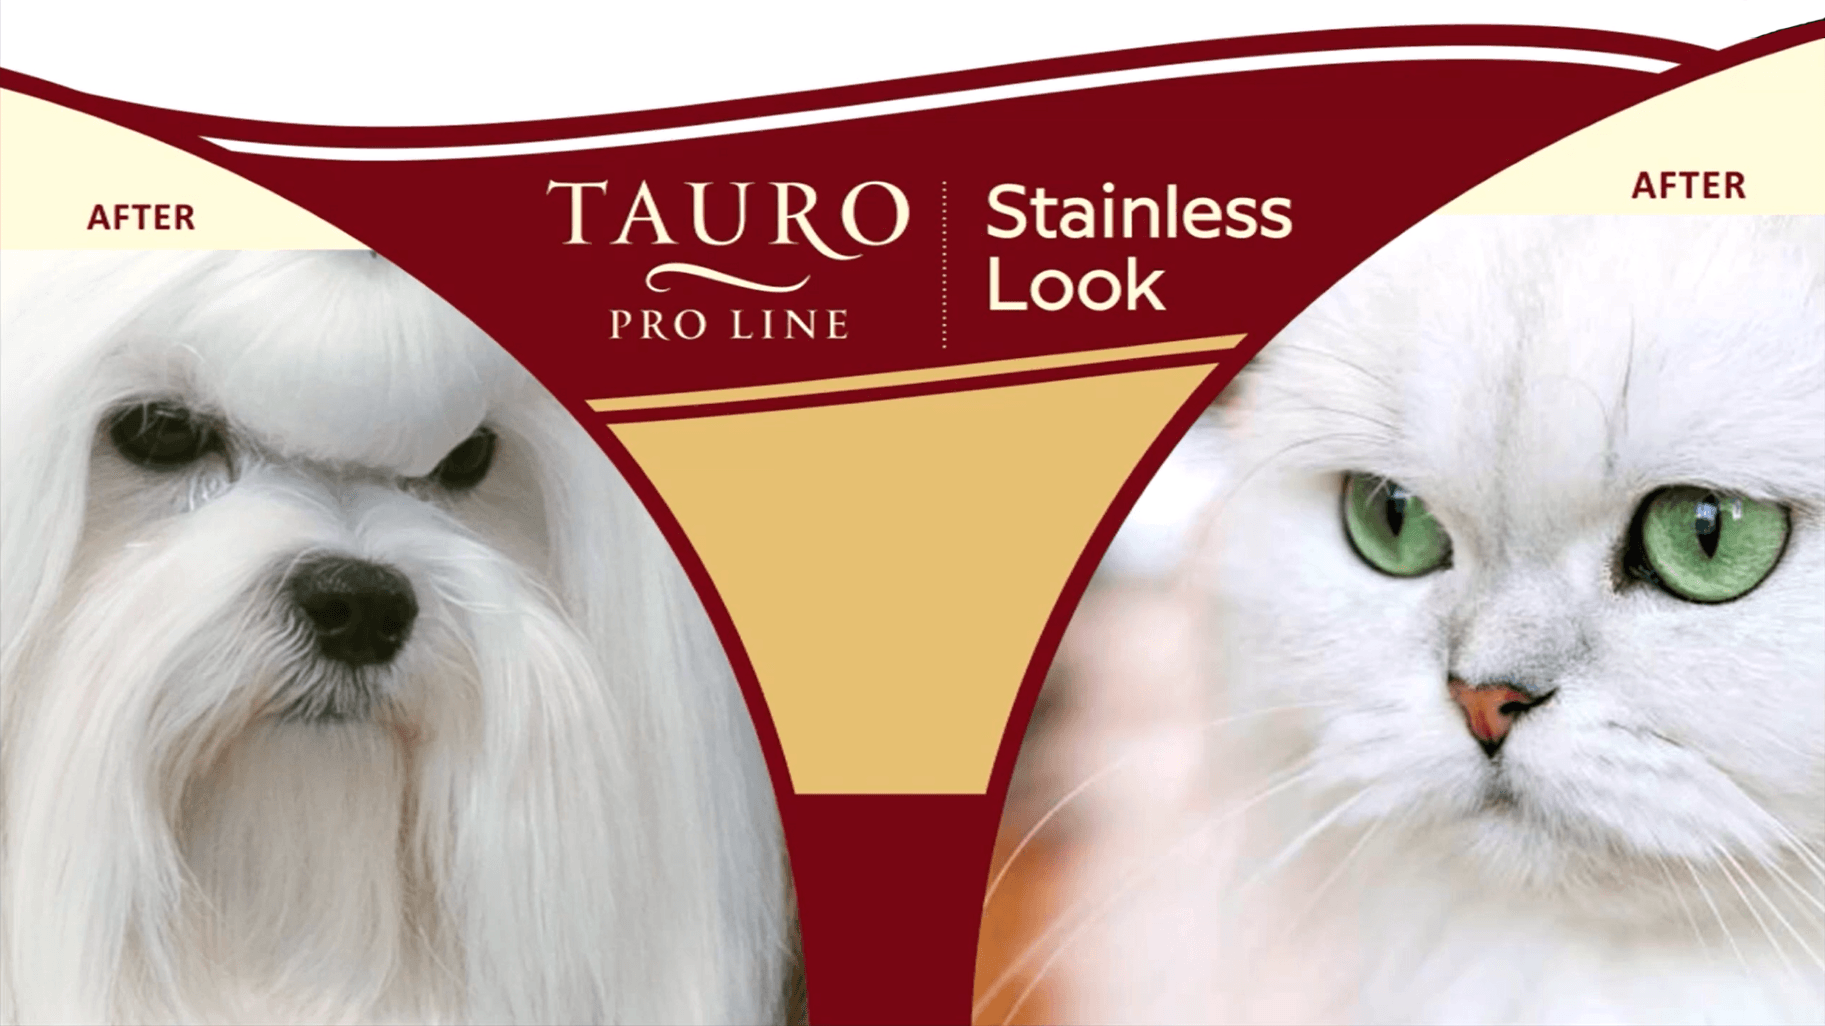 Tauro-Pro-Line-Stainless-Look_after